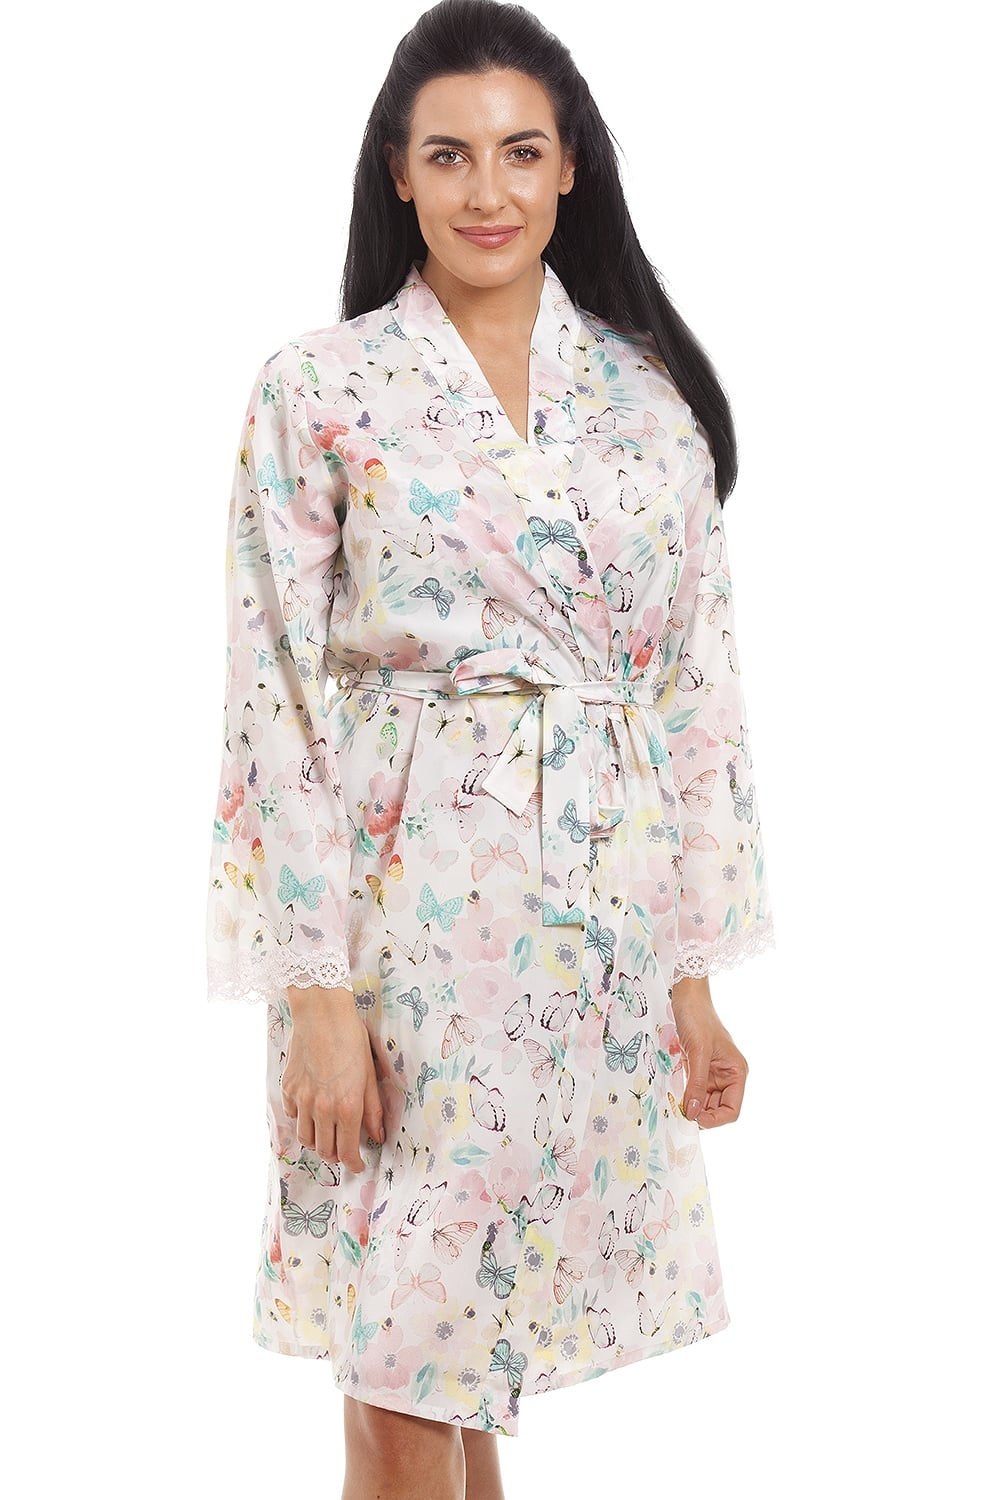 Butterfly And Bumble Bee Floral Print Knee Length Chiffon Dressing Gown